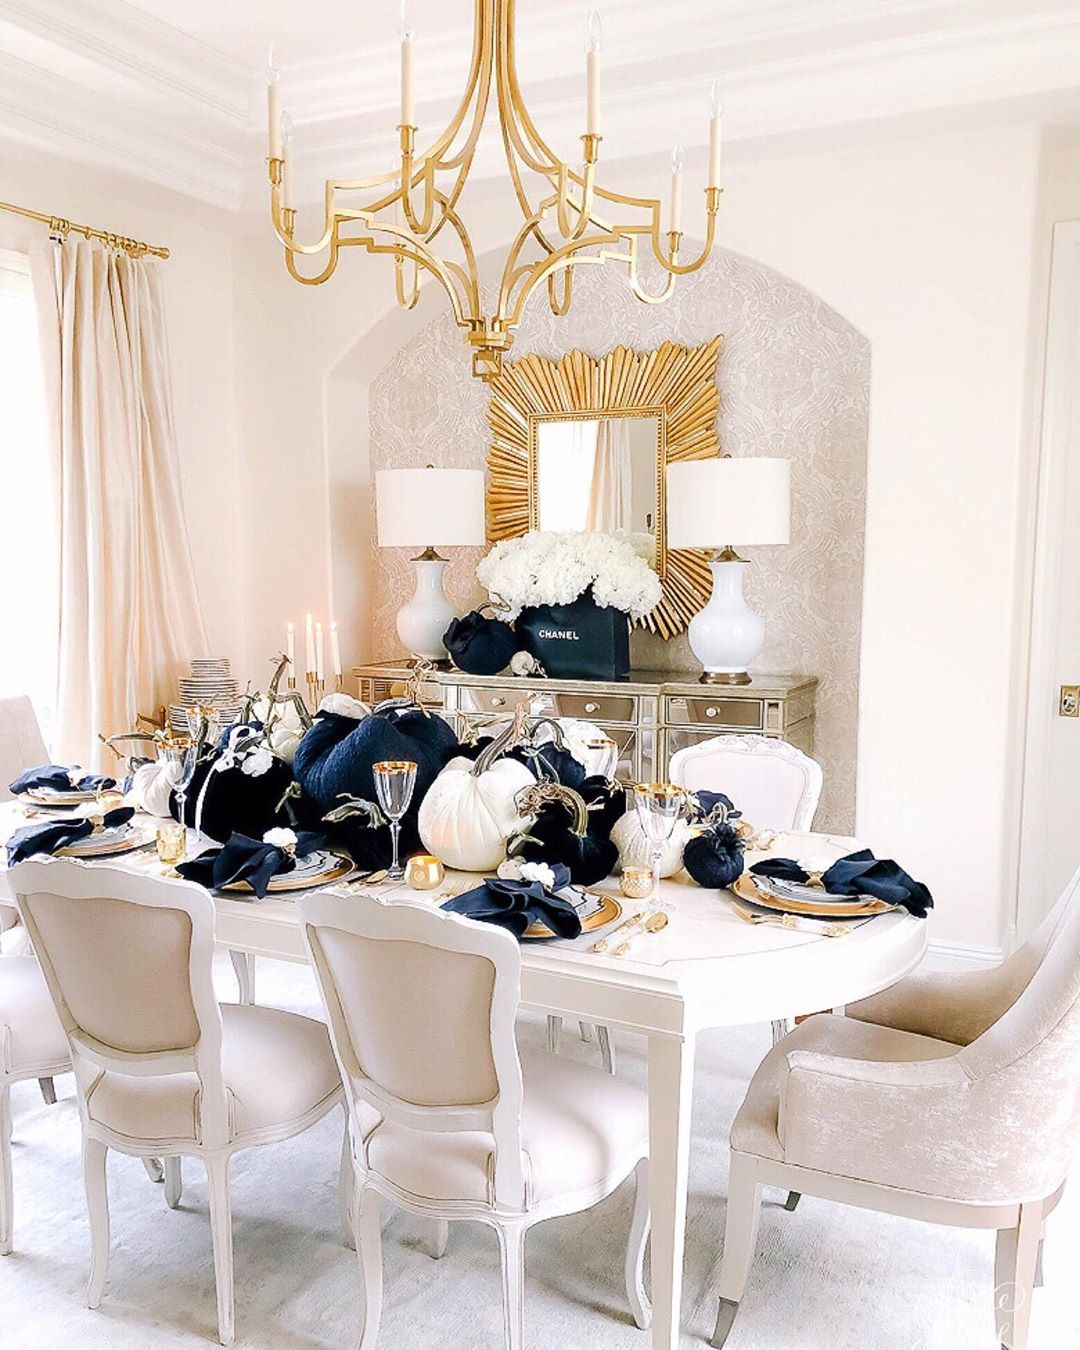 chanel glass dining table on image may contain table and indoor halloween table trending decor fall decor pinterest